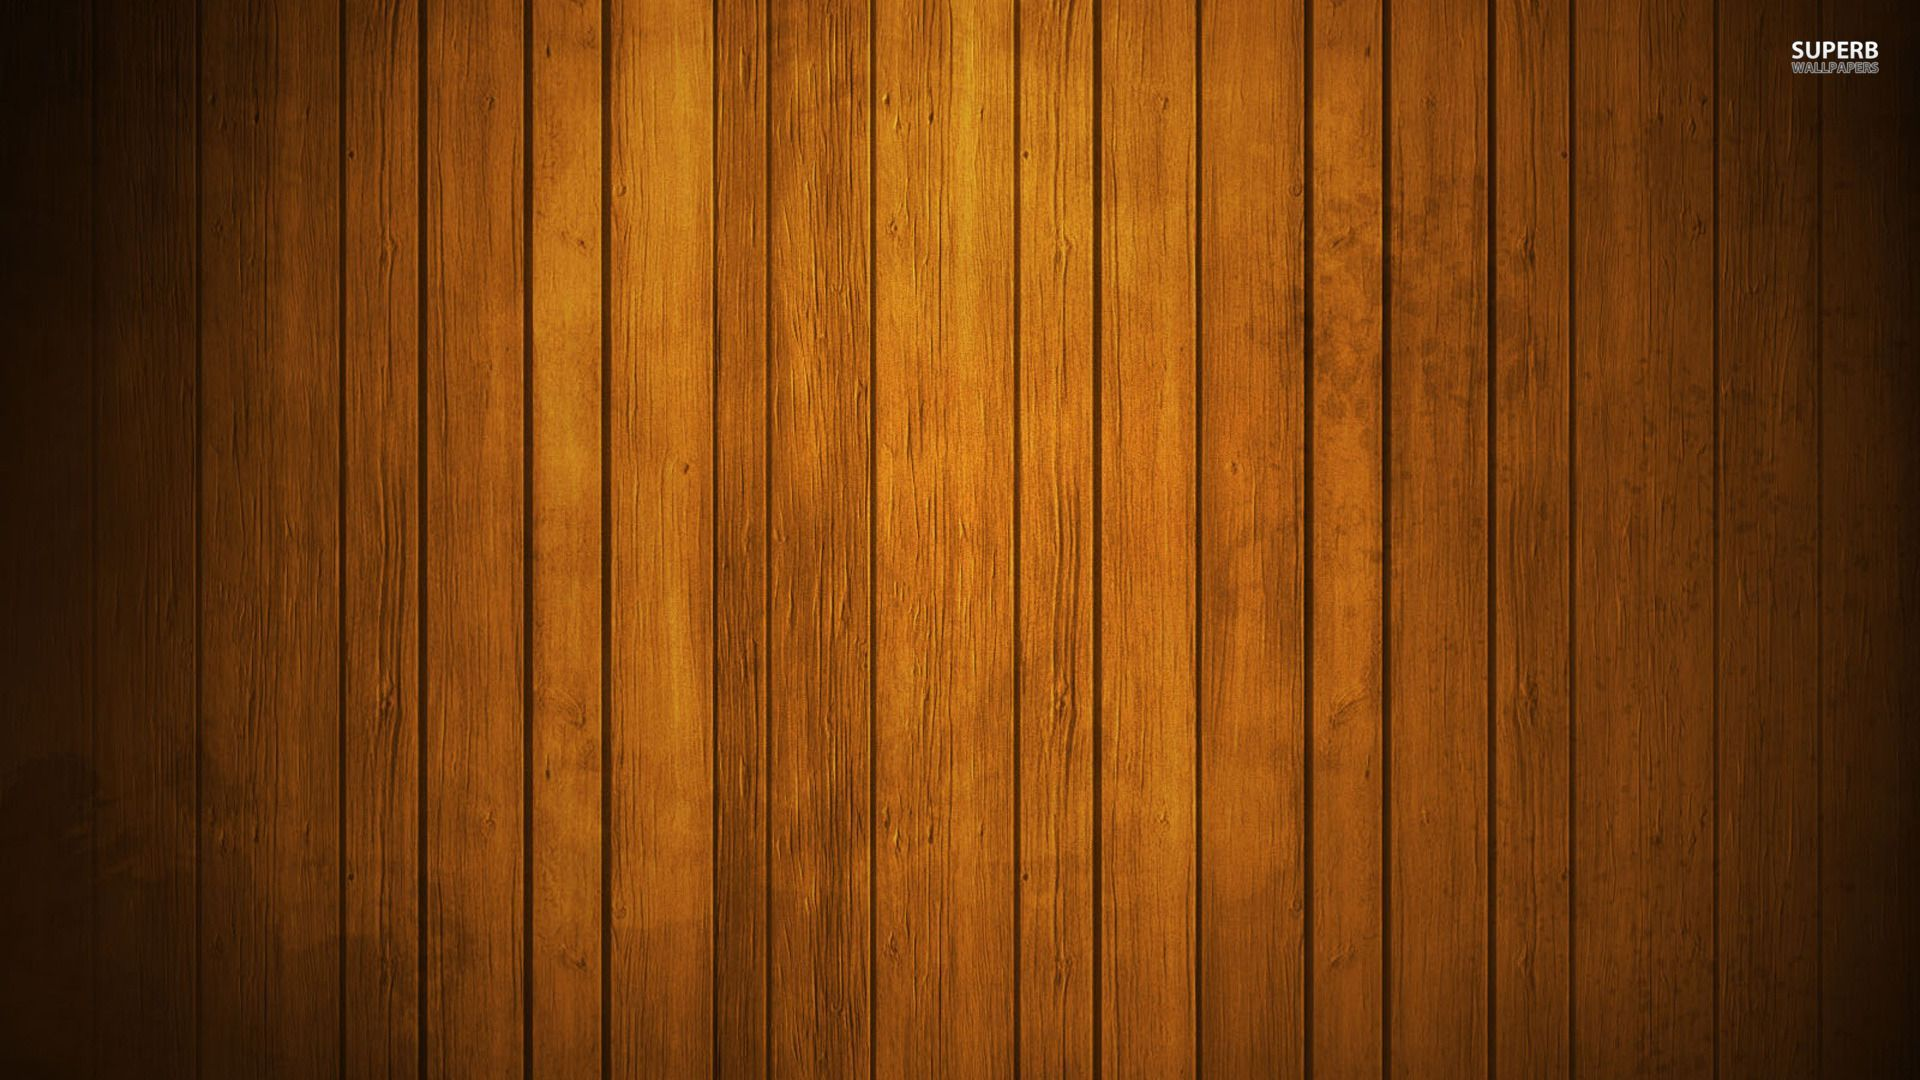 HD Wood Wallpapers para descarga gratuita 1920 × 1080 Wooden Wallpaper HD